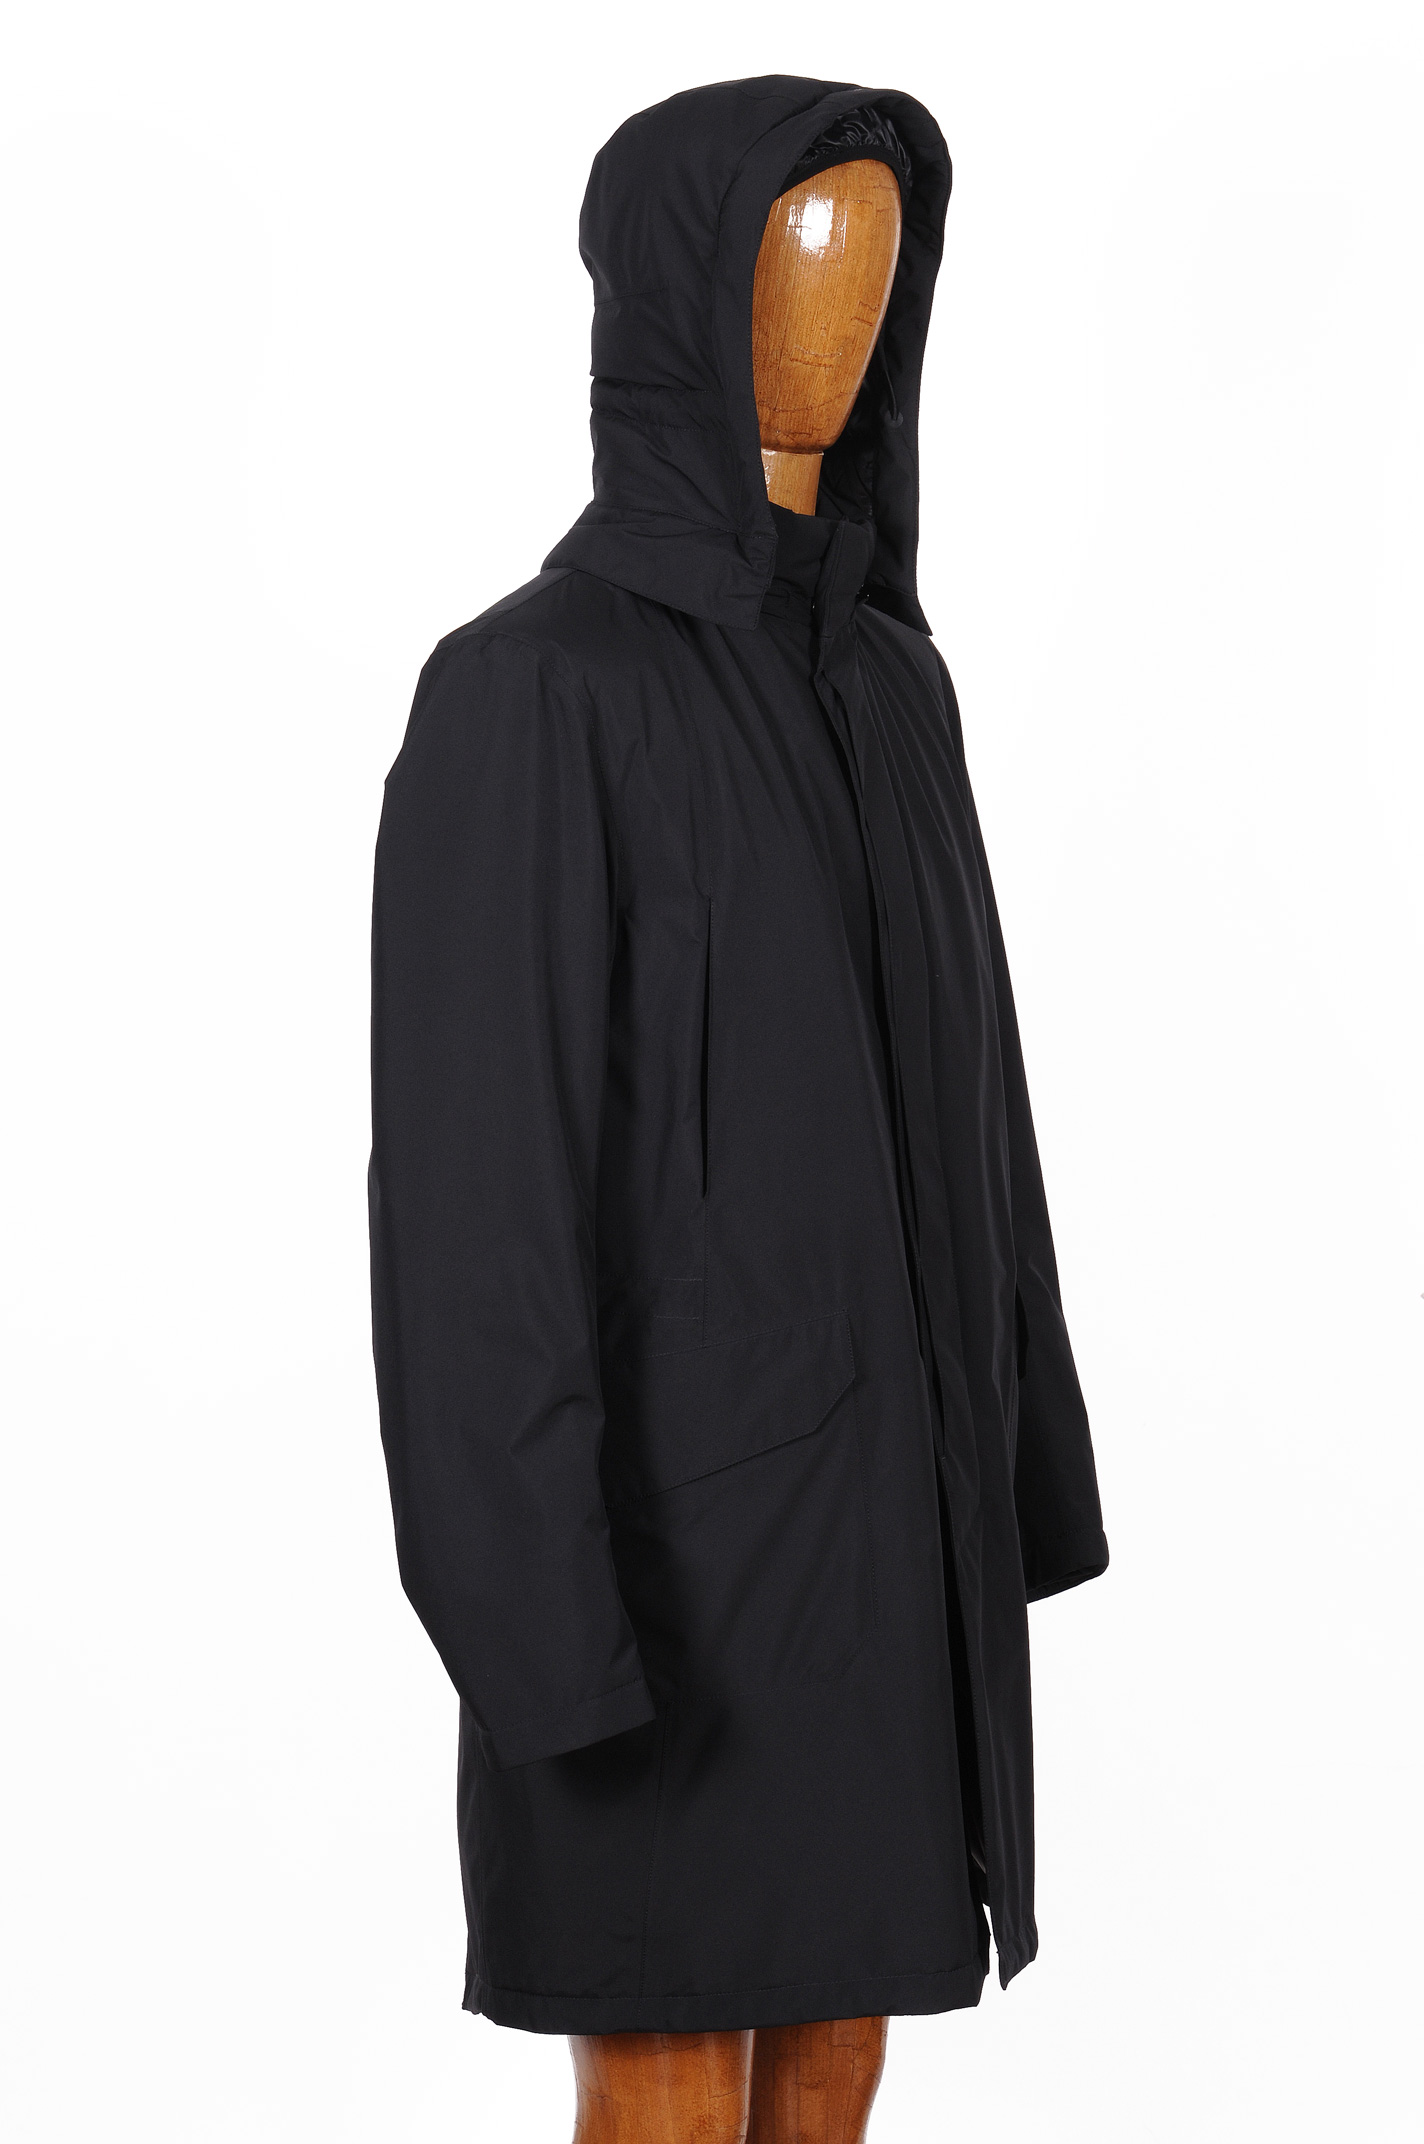 factory authentic 3981f 8af34 giaccone-parka-lungo-nero-herno-laminar-4.jpg